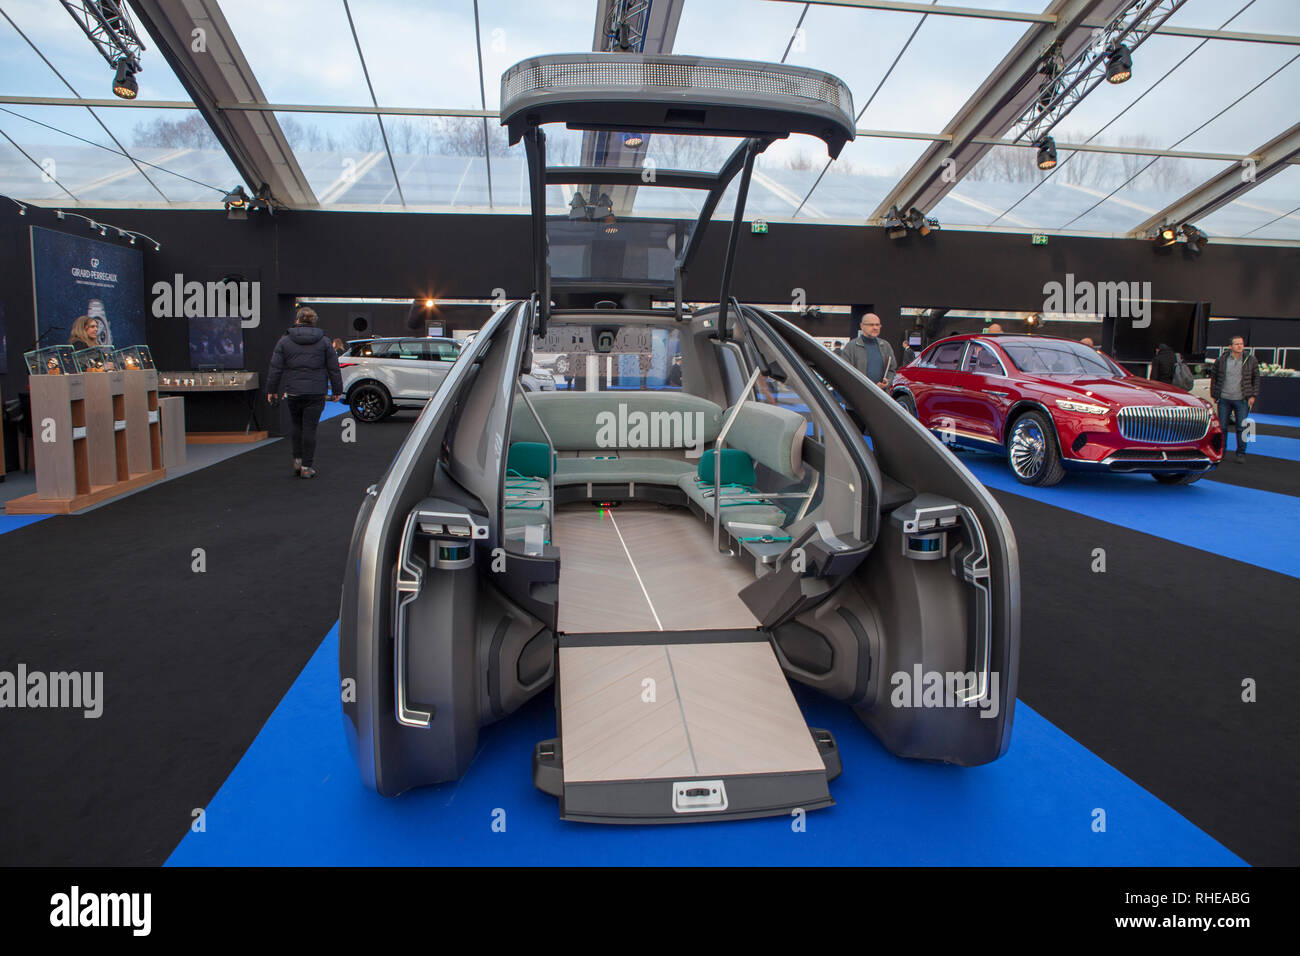 Many of Concept Cars and Design were presented at the Invalide in Paris or had the election of the most beautiful car of the year. - Stock Image